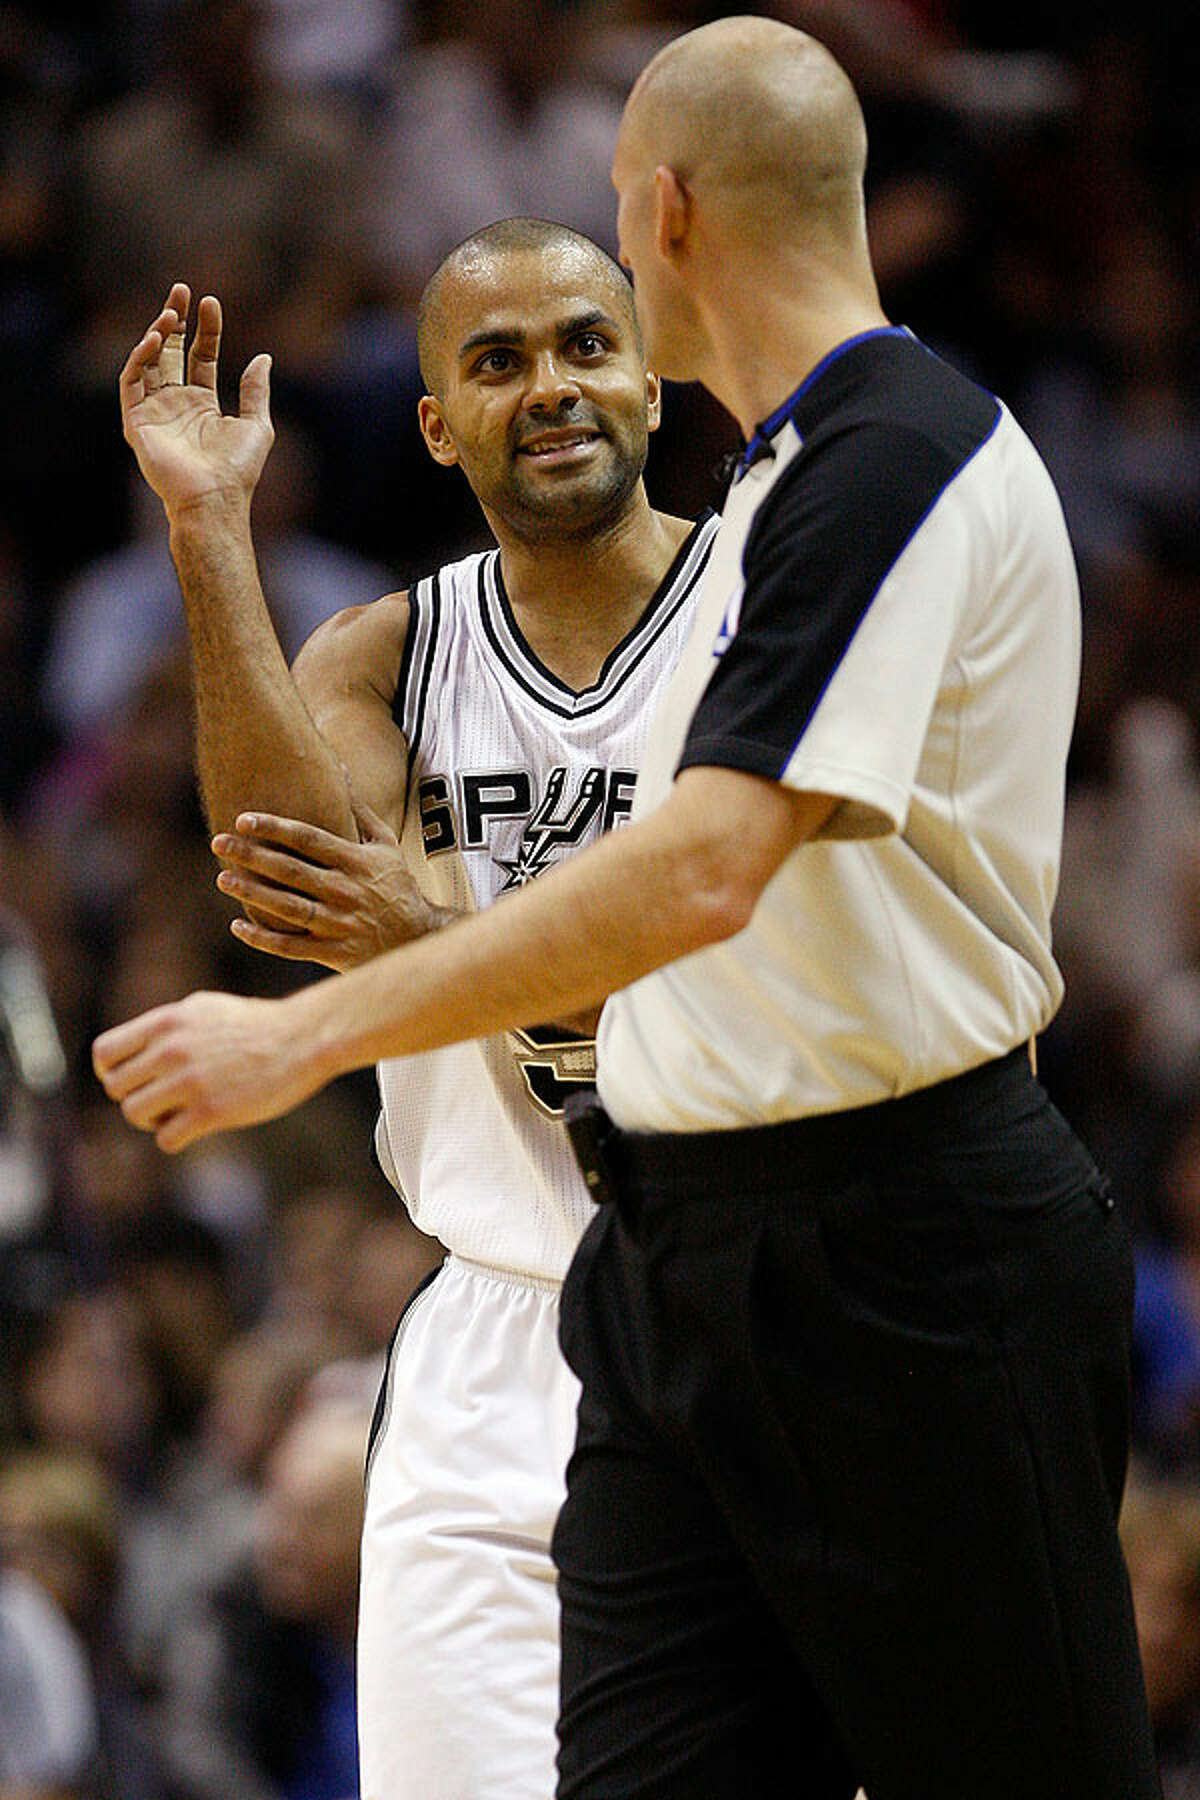 The Spurs' Tony Parker pleads his case with referee Eric Dalen during the first half against the Milwaukee Bucks at the AT&T Center, Wednesday, Dec. 15, 2010.